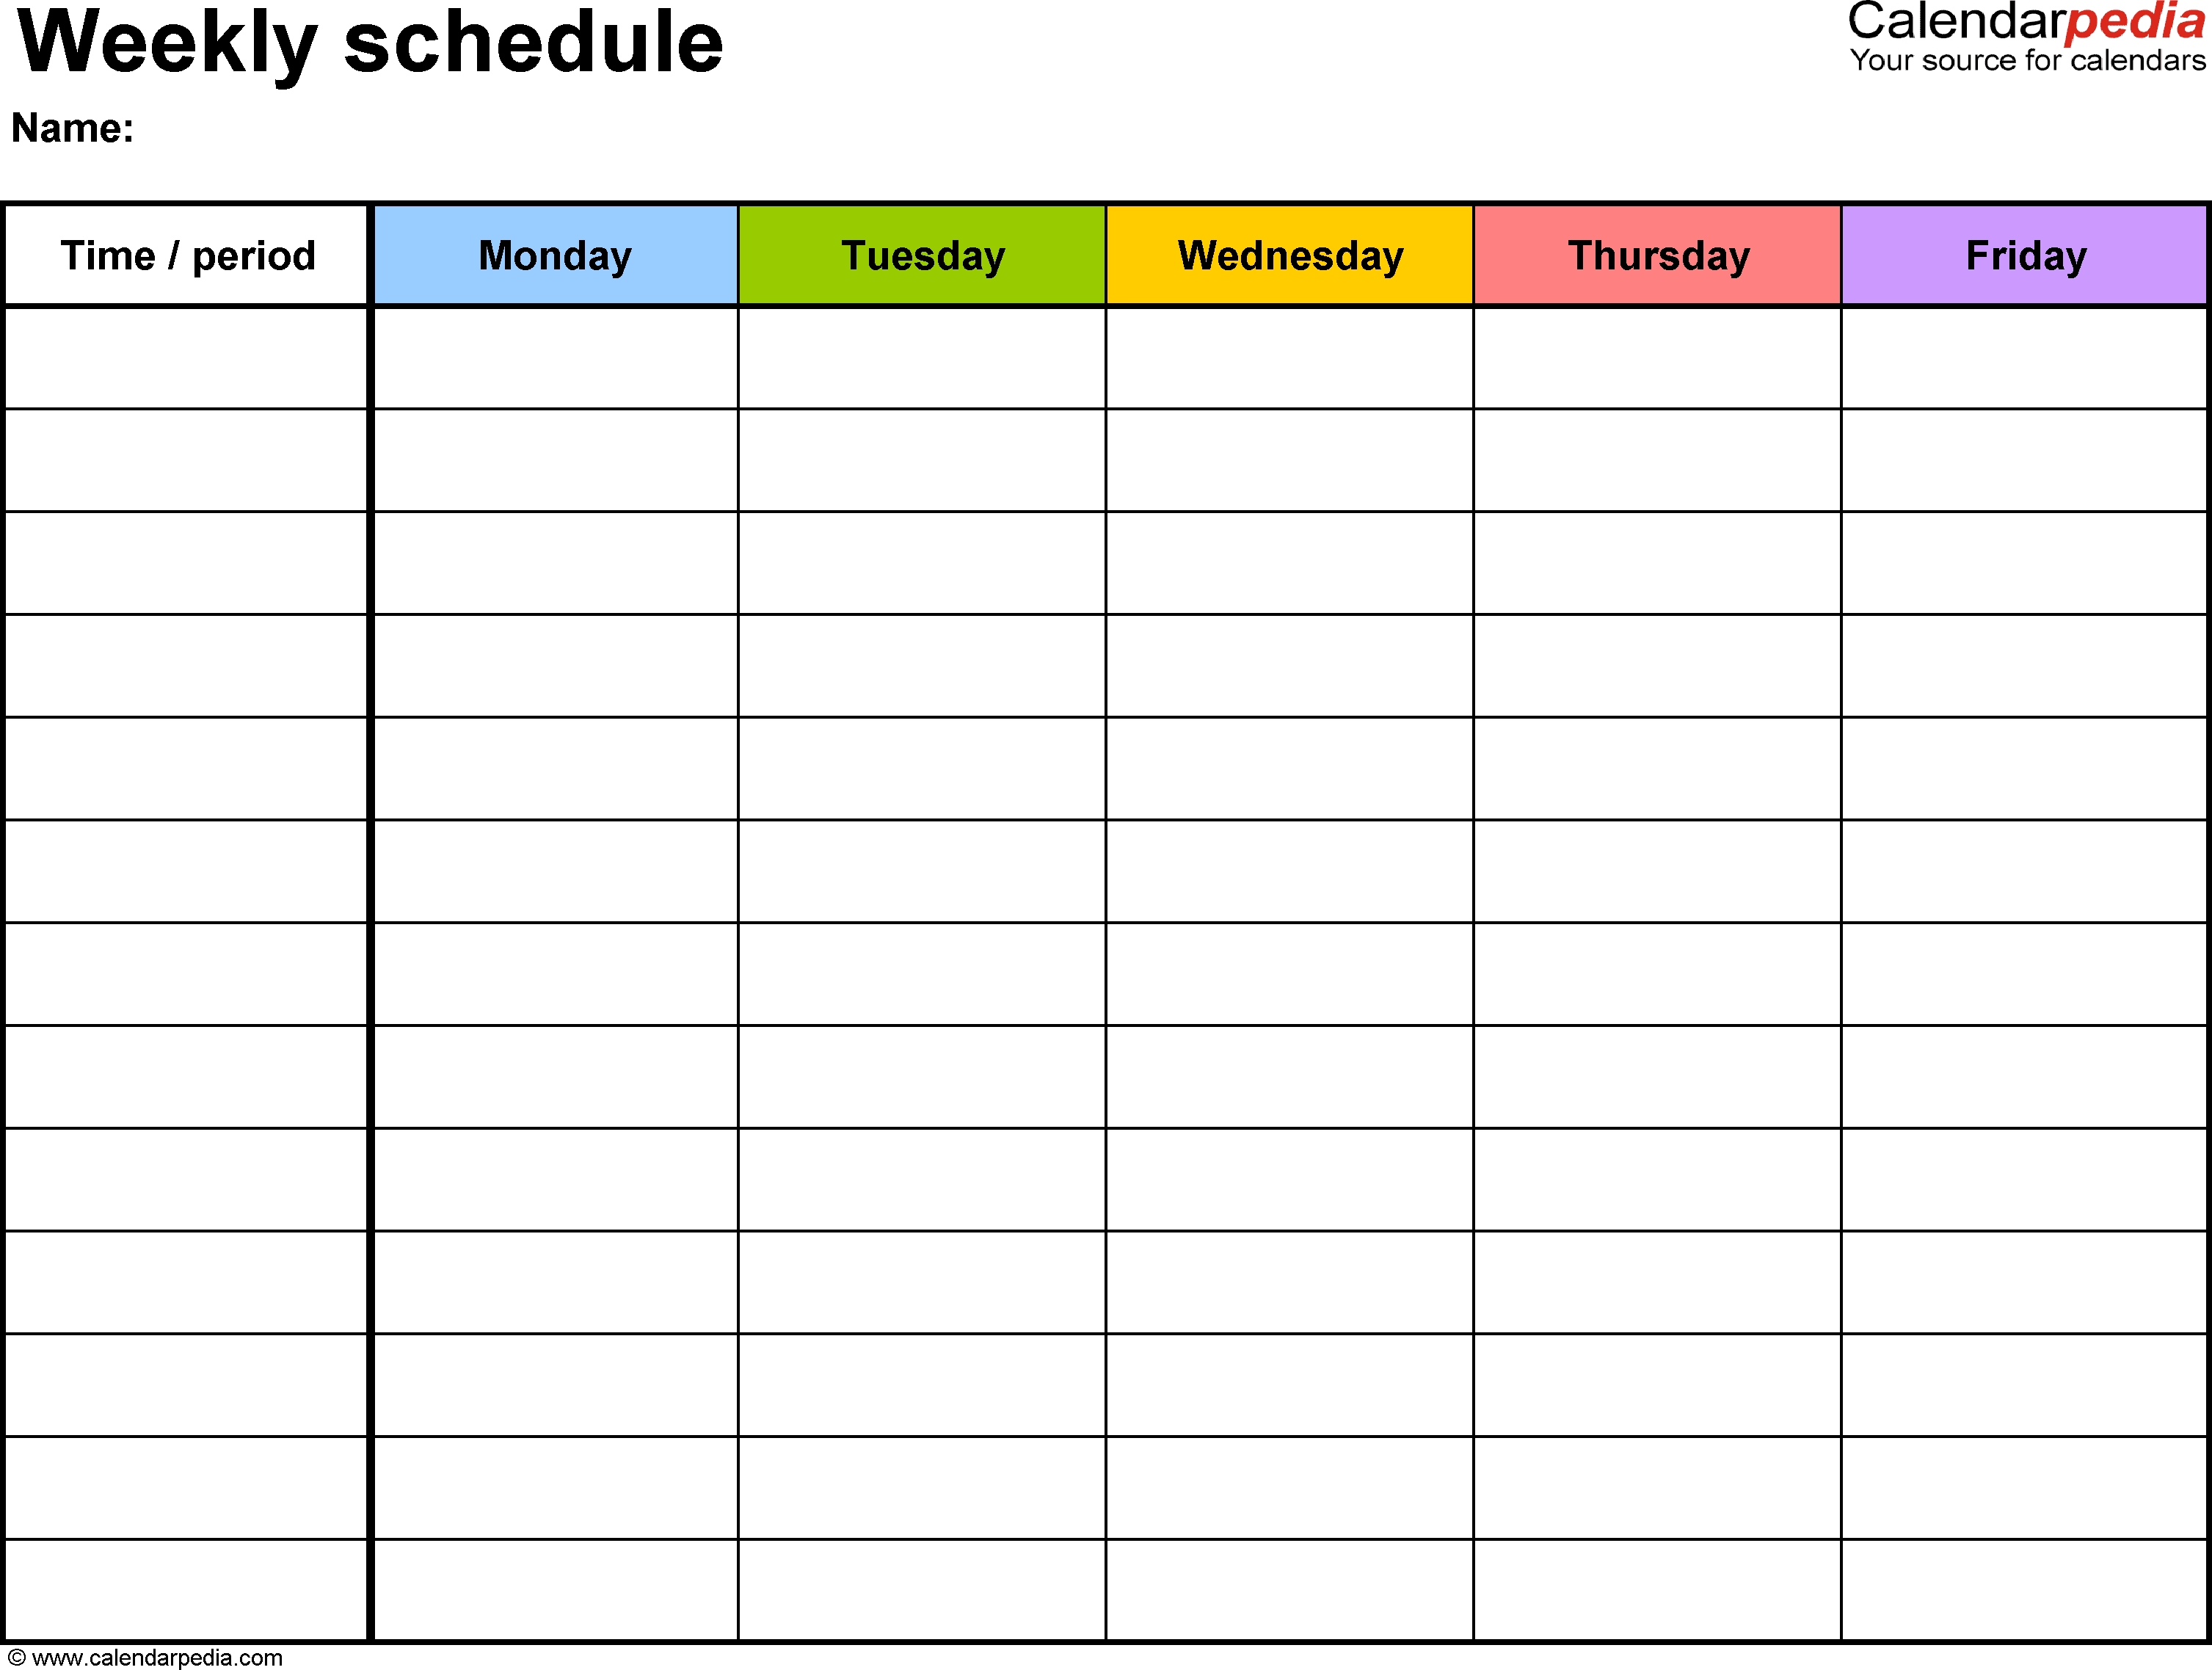 Free Weekly Schedule Templates For Word - 18 Templates Calendar Template 1 Week